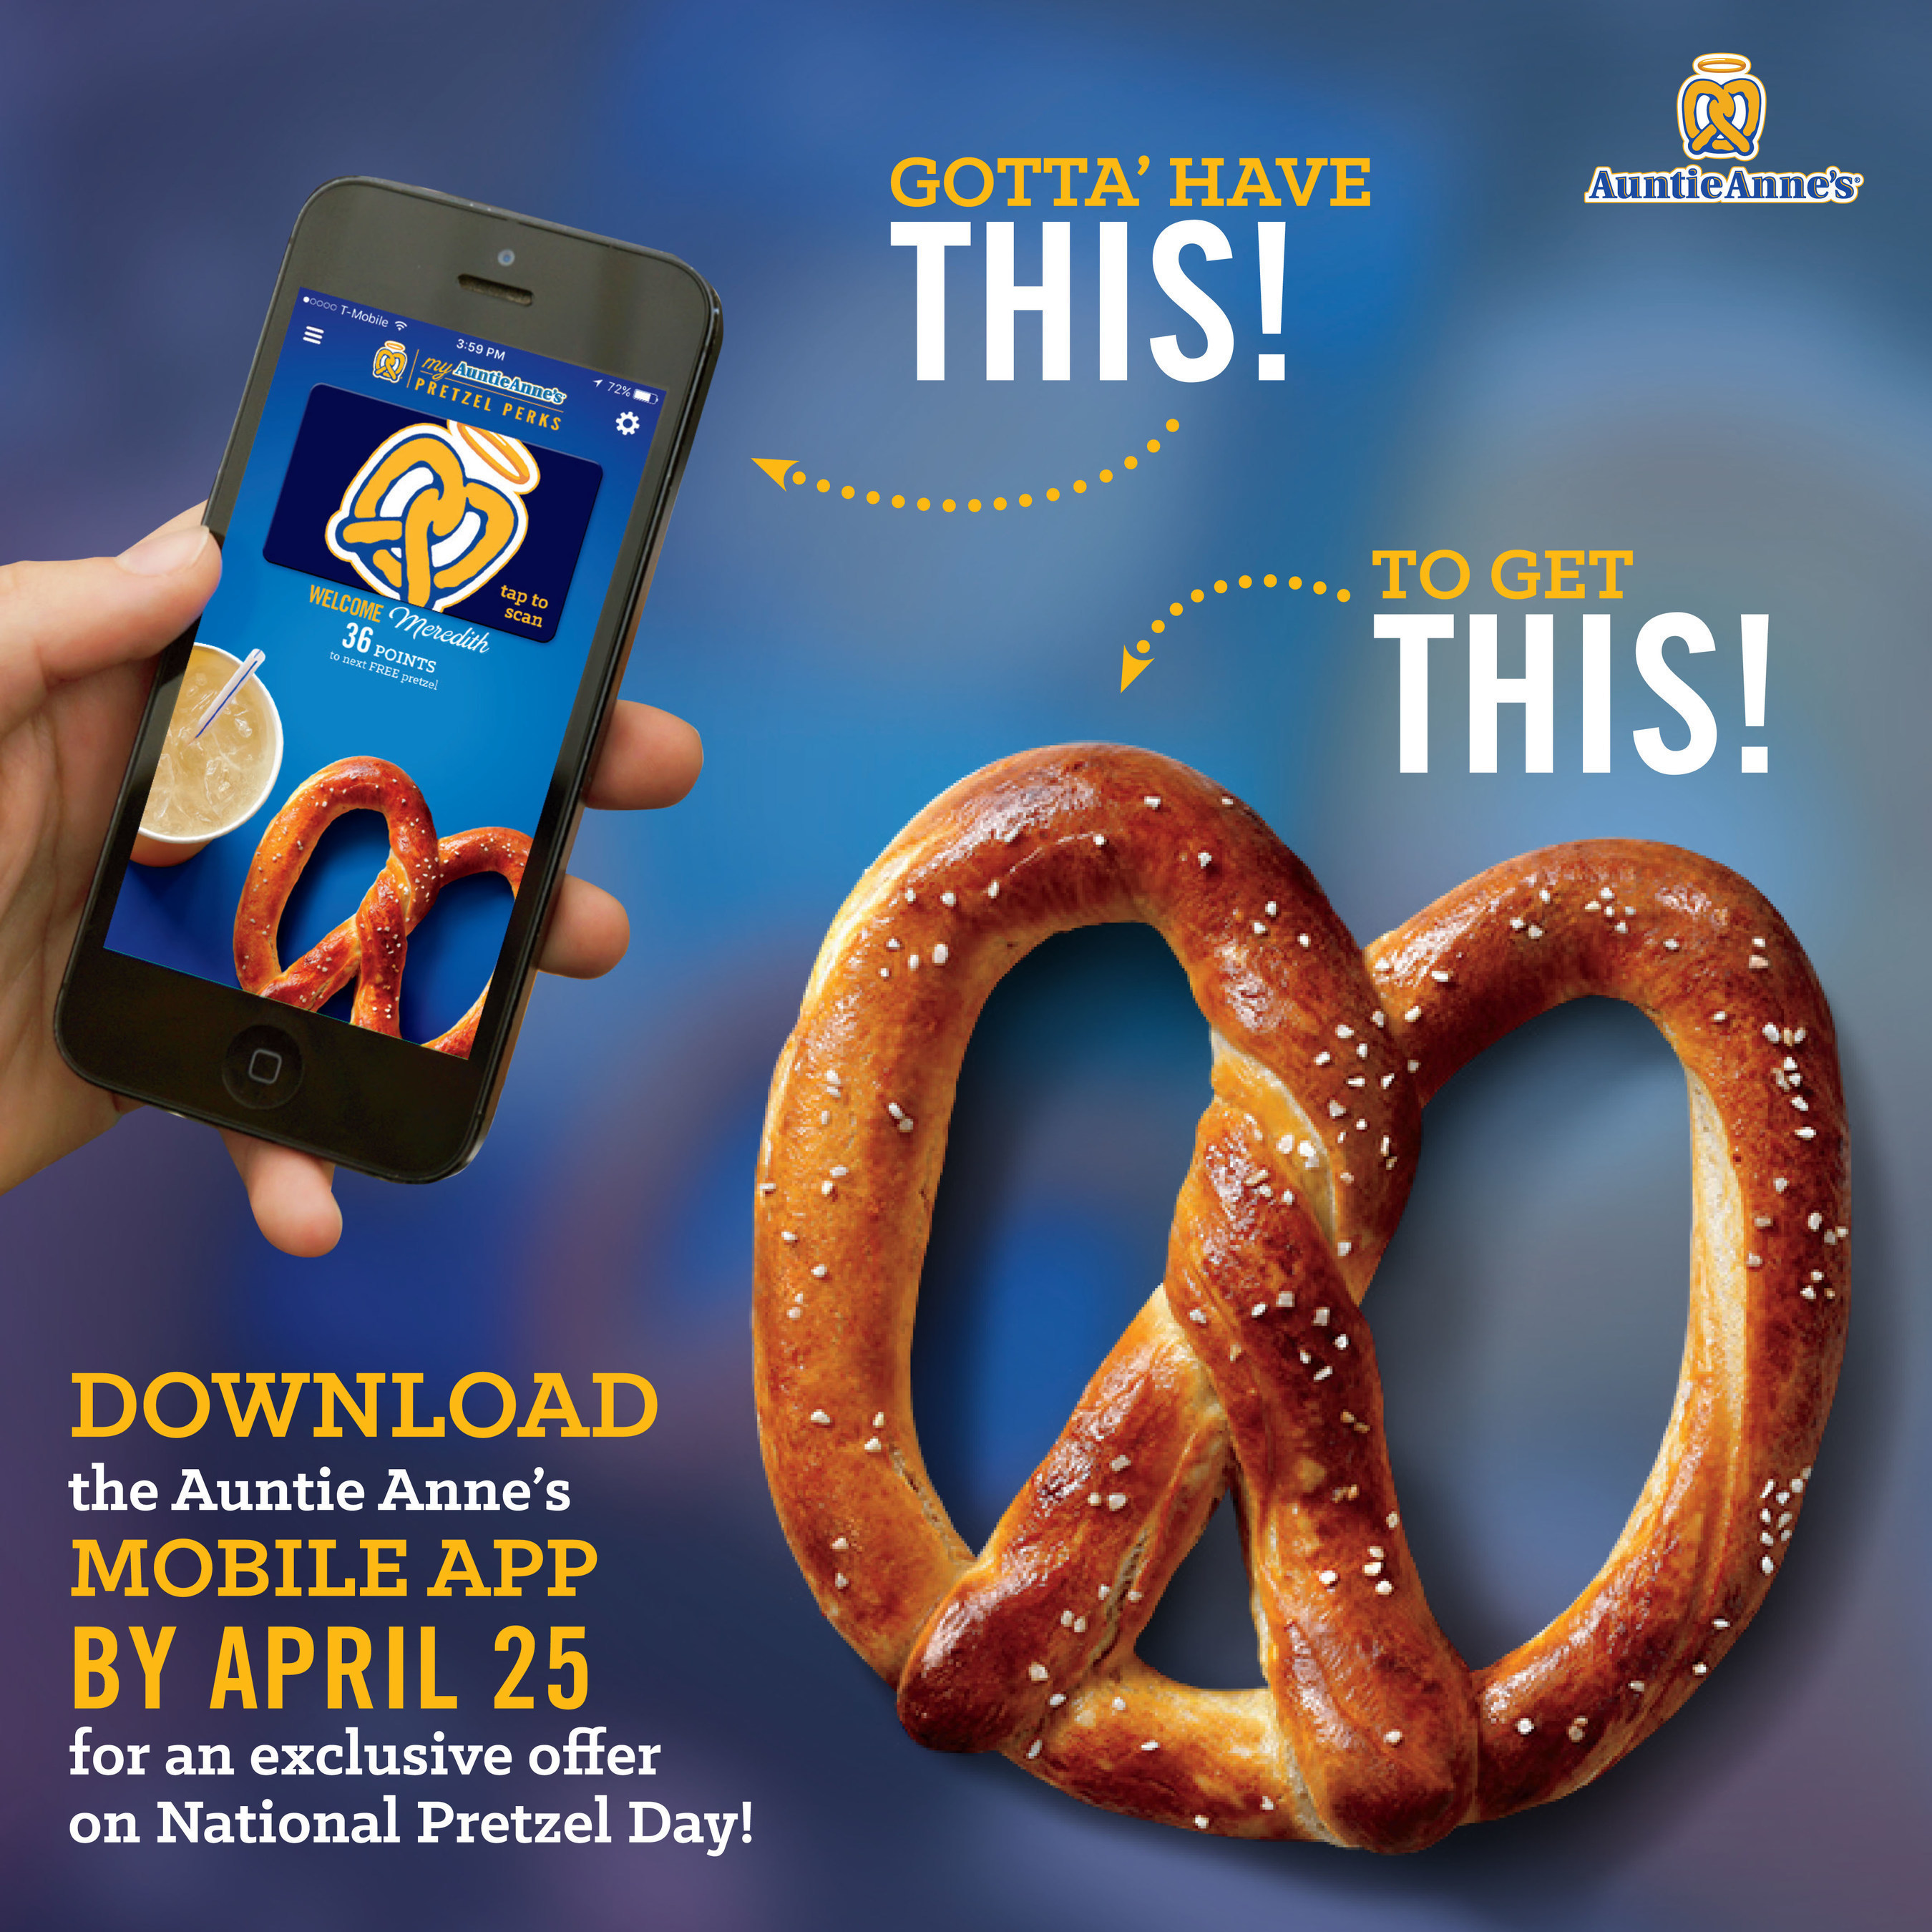 Download Auntie Anne's Pretzel Perks App to receive a FREE Pretzel on National Pretzel Day, plus a chance to win FREE Pretzels for a year!